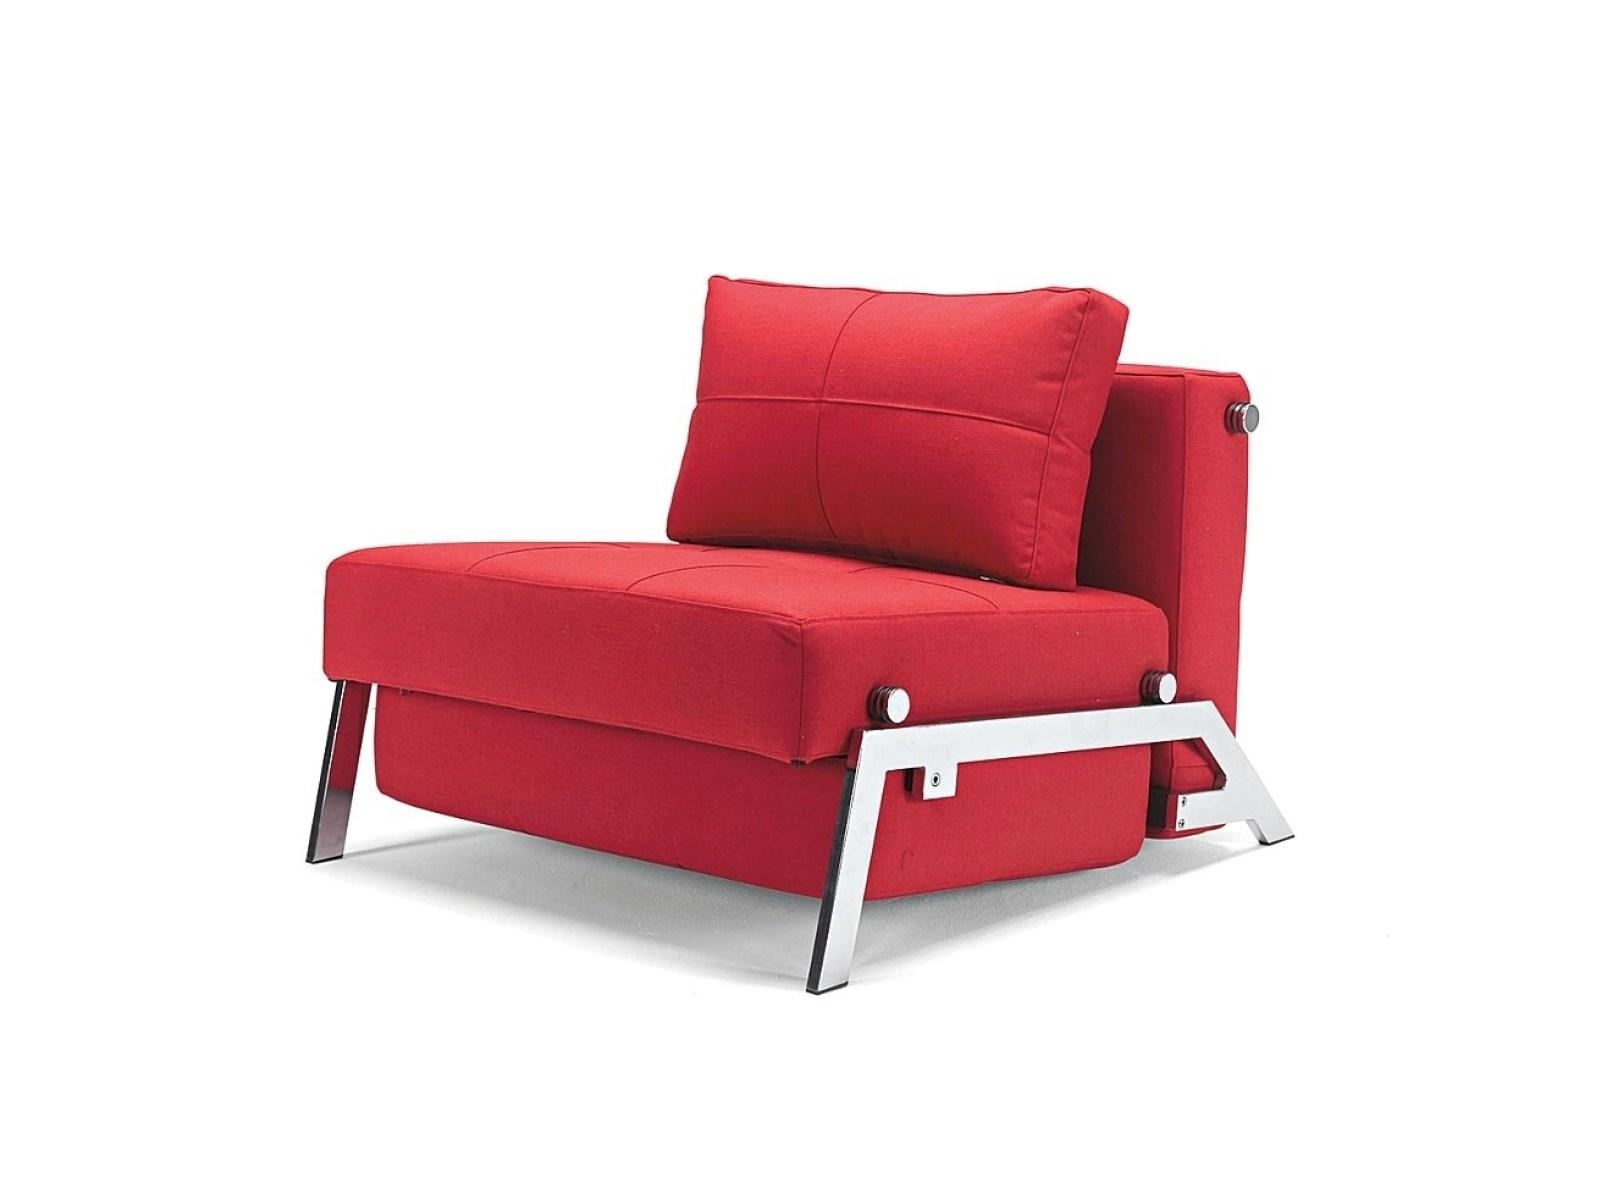 ▻ Sofa : 1 Lovable Single Sofa Sleeper Lovely Cheap Furniture With Regard To Single Sofa Beds (Image 1 of 20)